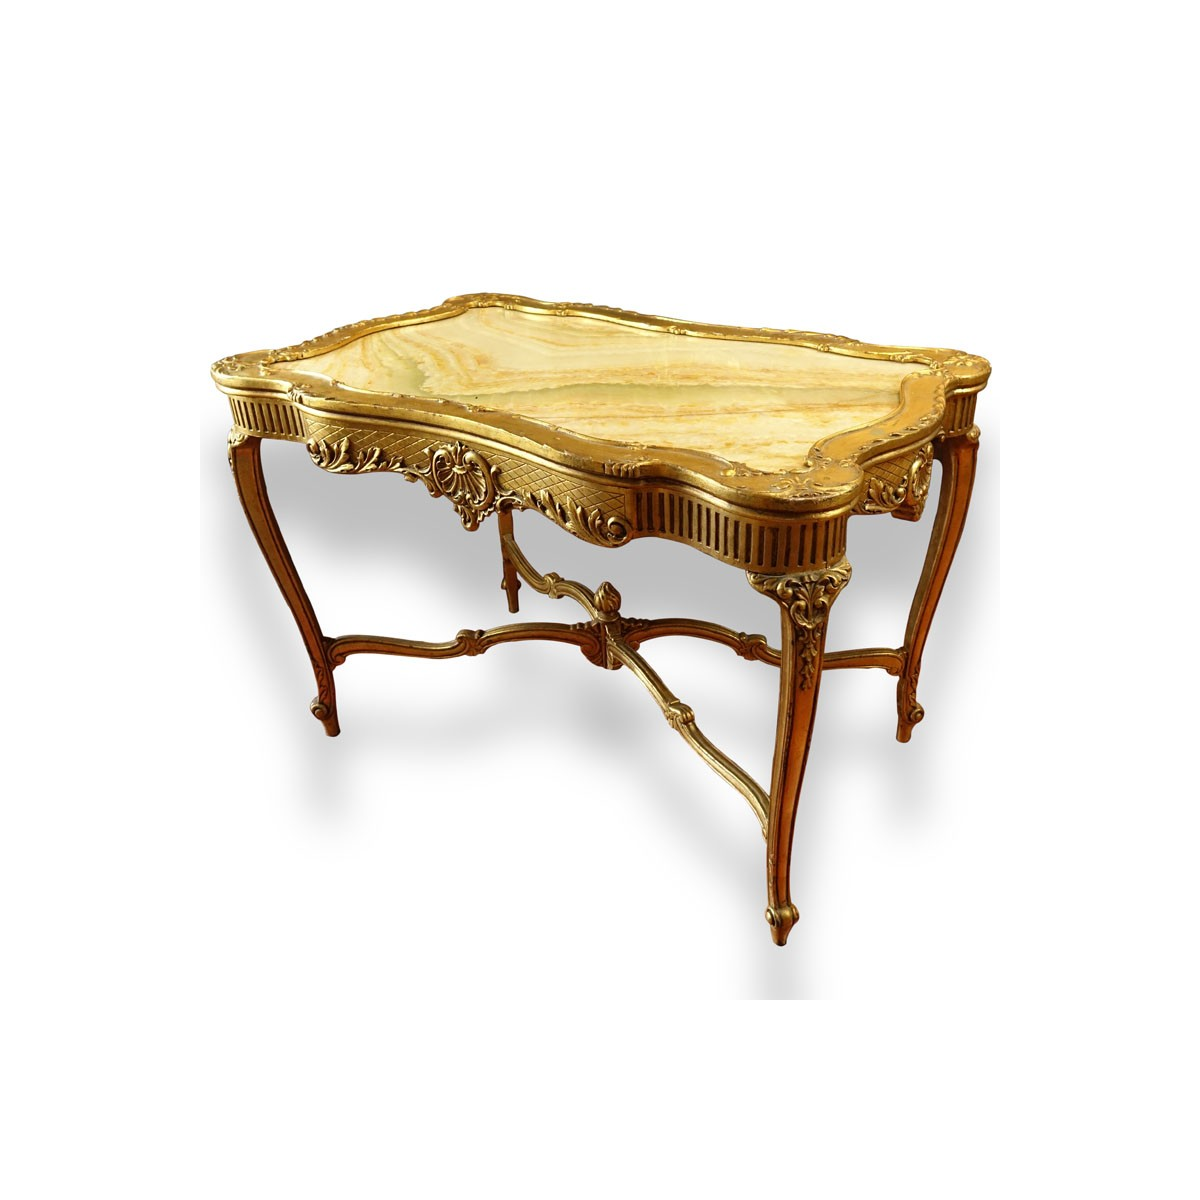 Early 20th Century Carved and Gilt Wood Center Table with Onyx Top. Decorated with carved scroll mo